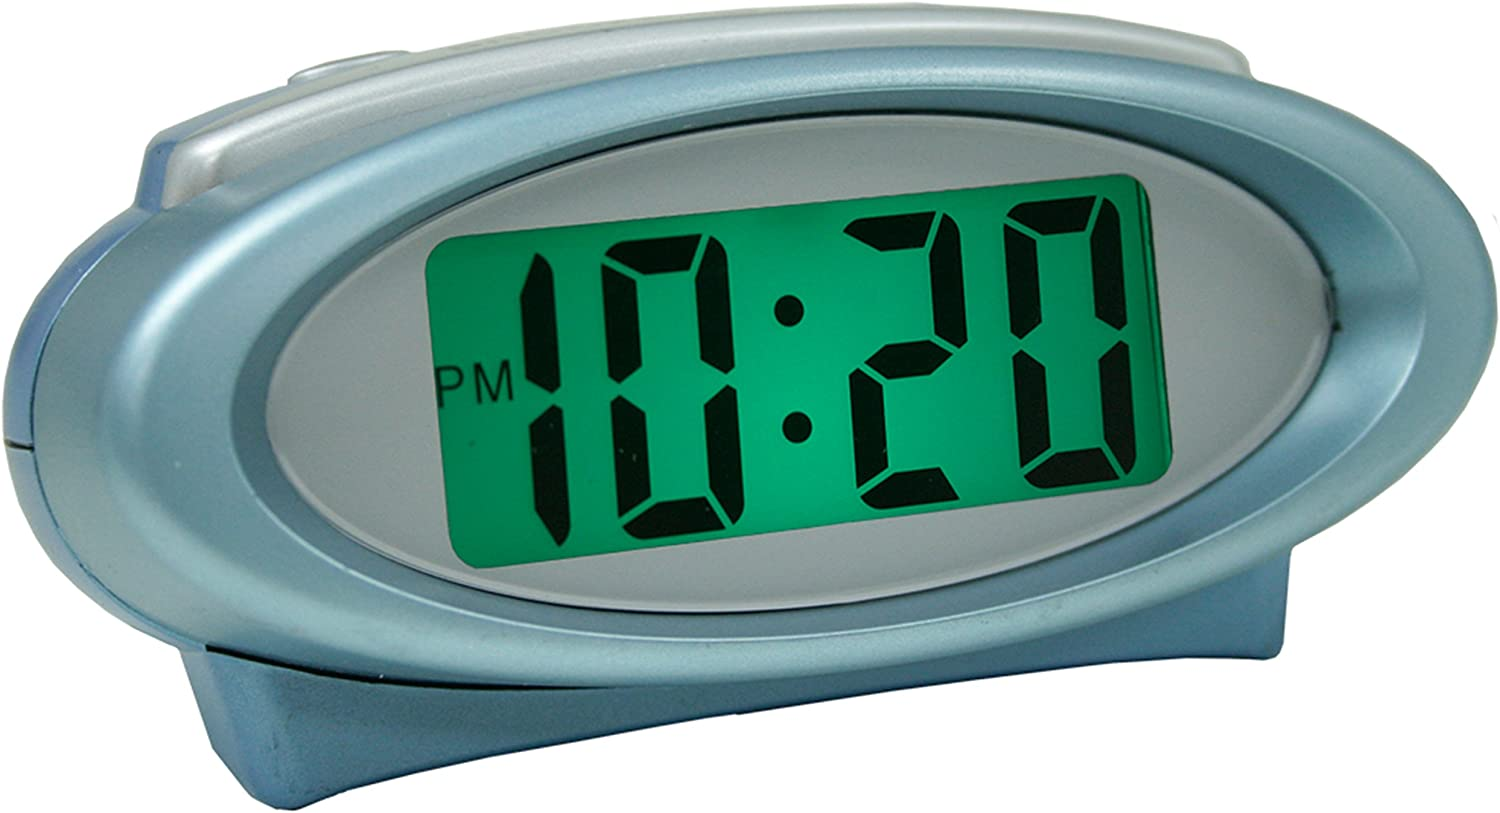 Equity by La Crosse Milwaukee Mall 30330 Digital with Night Recommendation Alarm Clock Vision